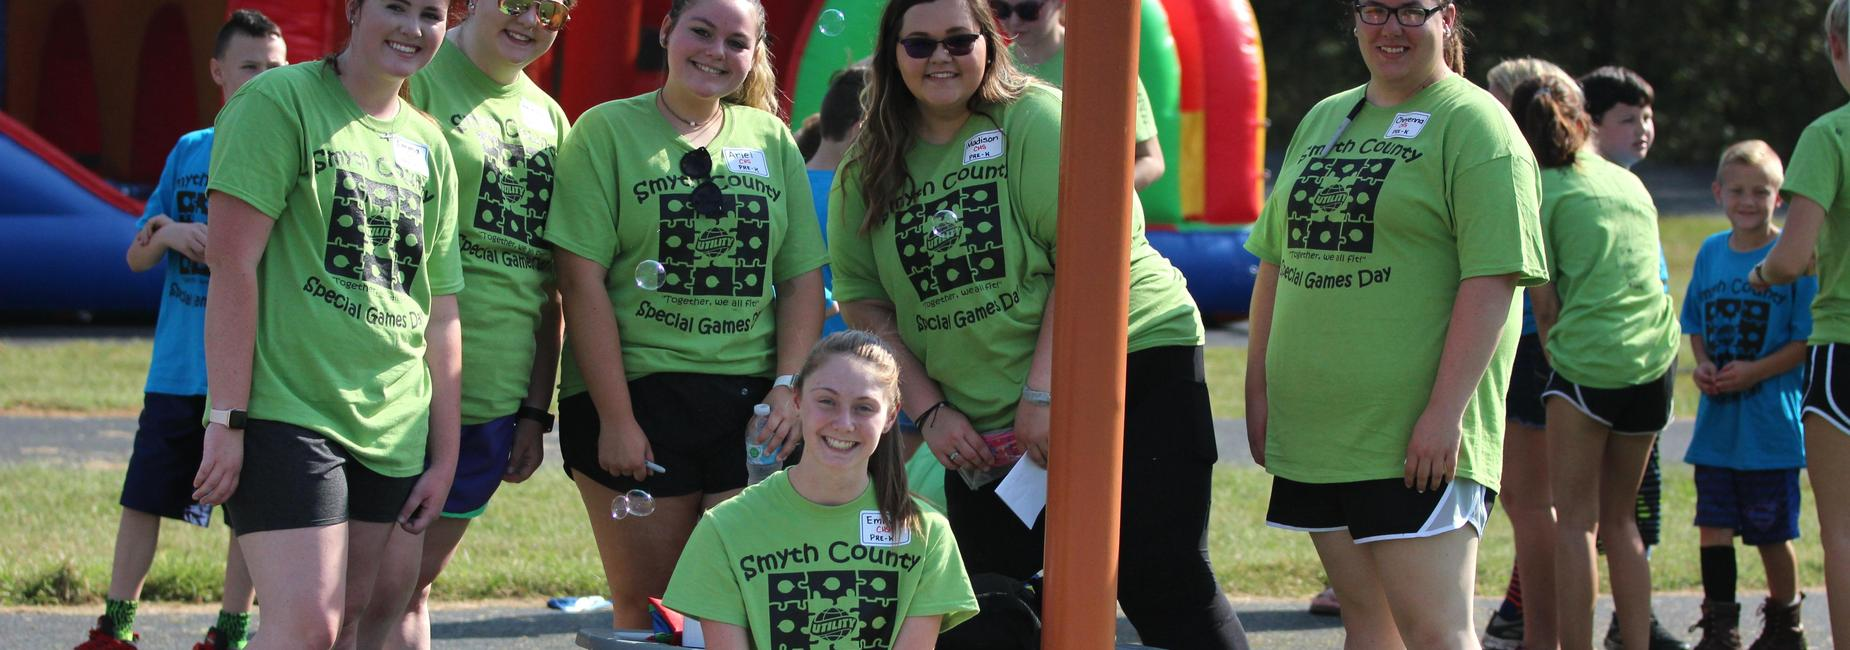 Student volunteers at Special Olympic Games